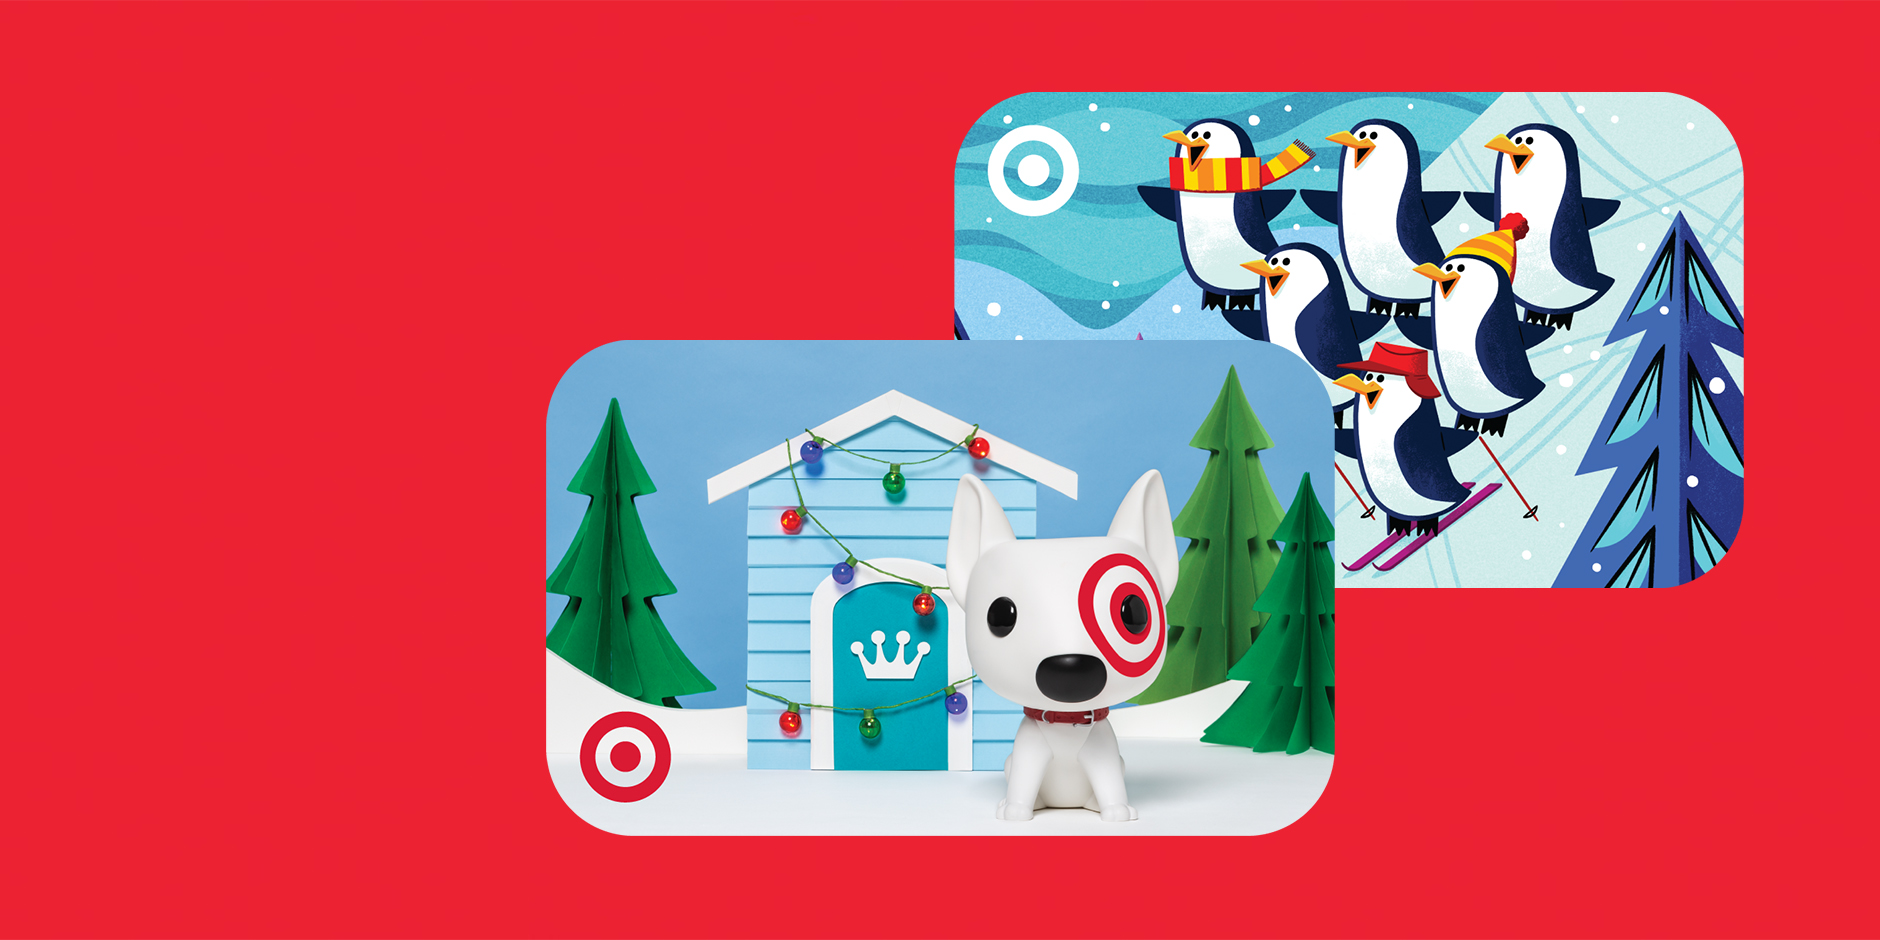 Two Target GiftCards stacked on a red background, one with Bullseye the dog and one with penguins